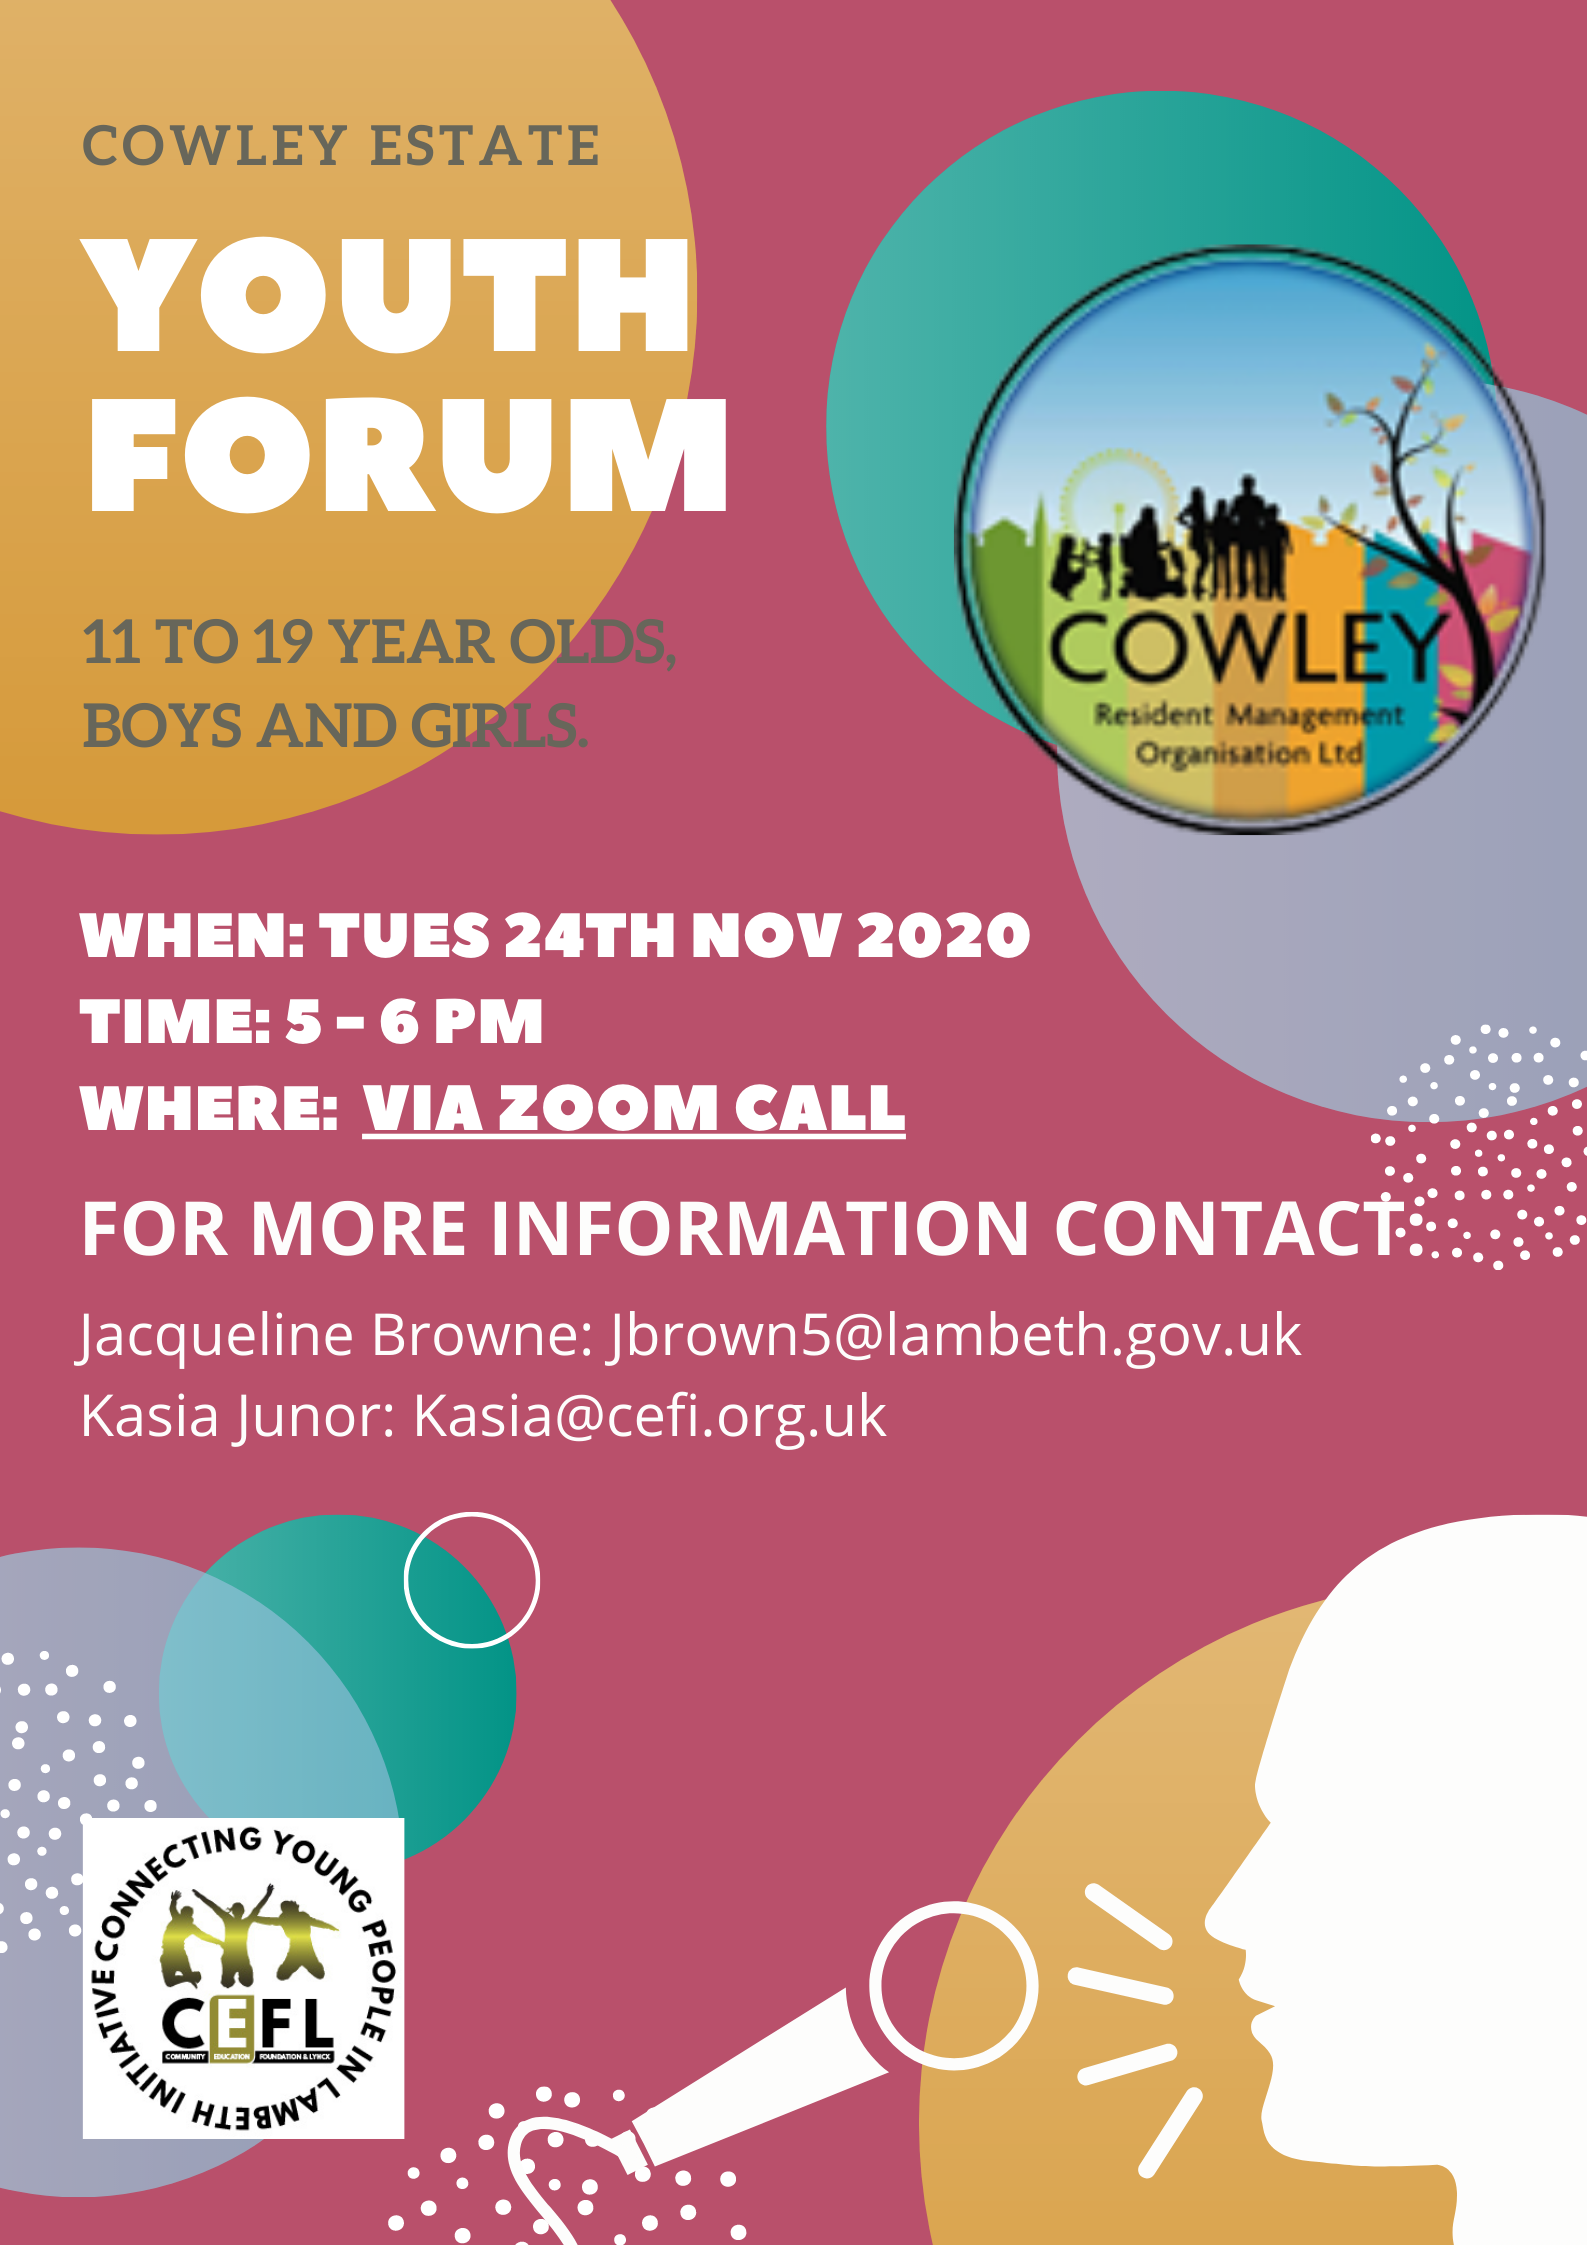 Cowley Youth Forum